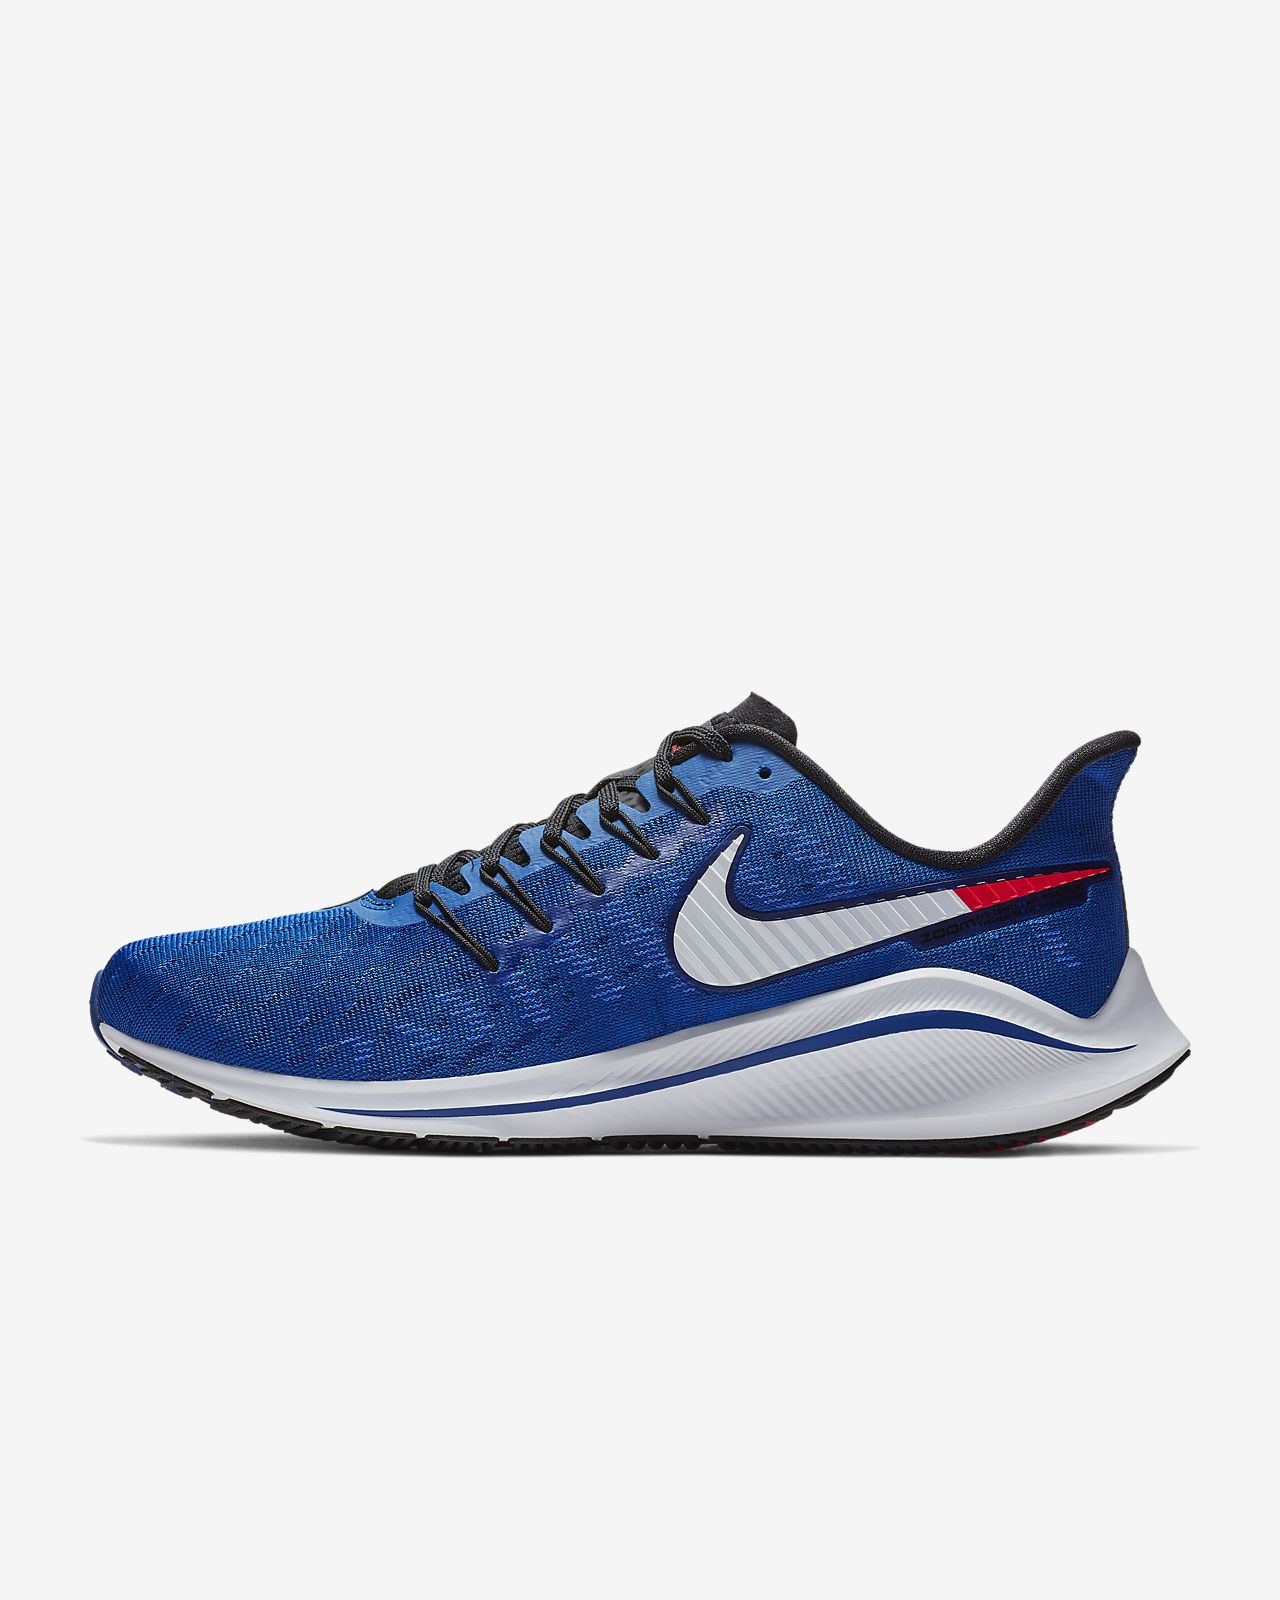 6a06daa59346f Nike Air Zoom Vomero 14 Men s Running Shoe. Nike.com GB